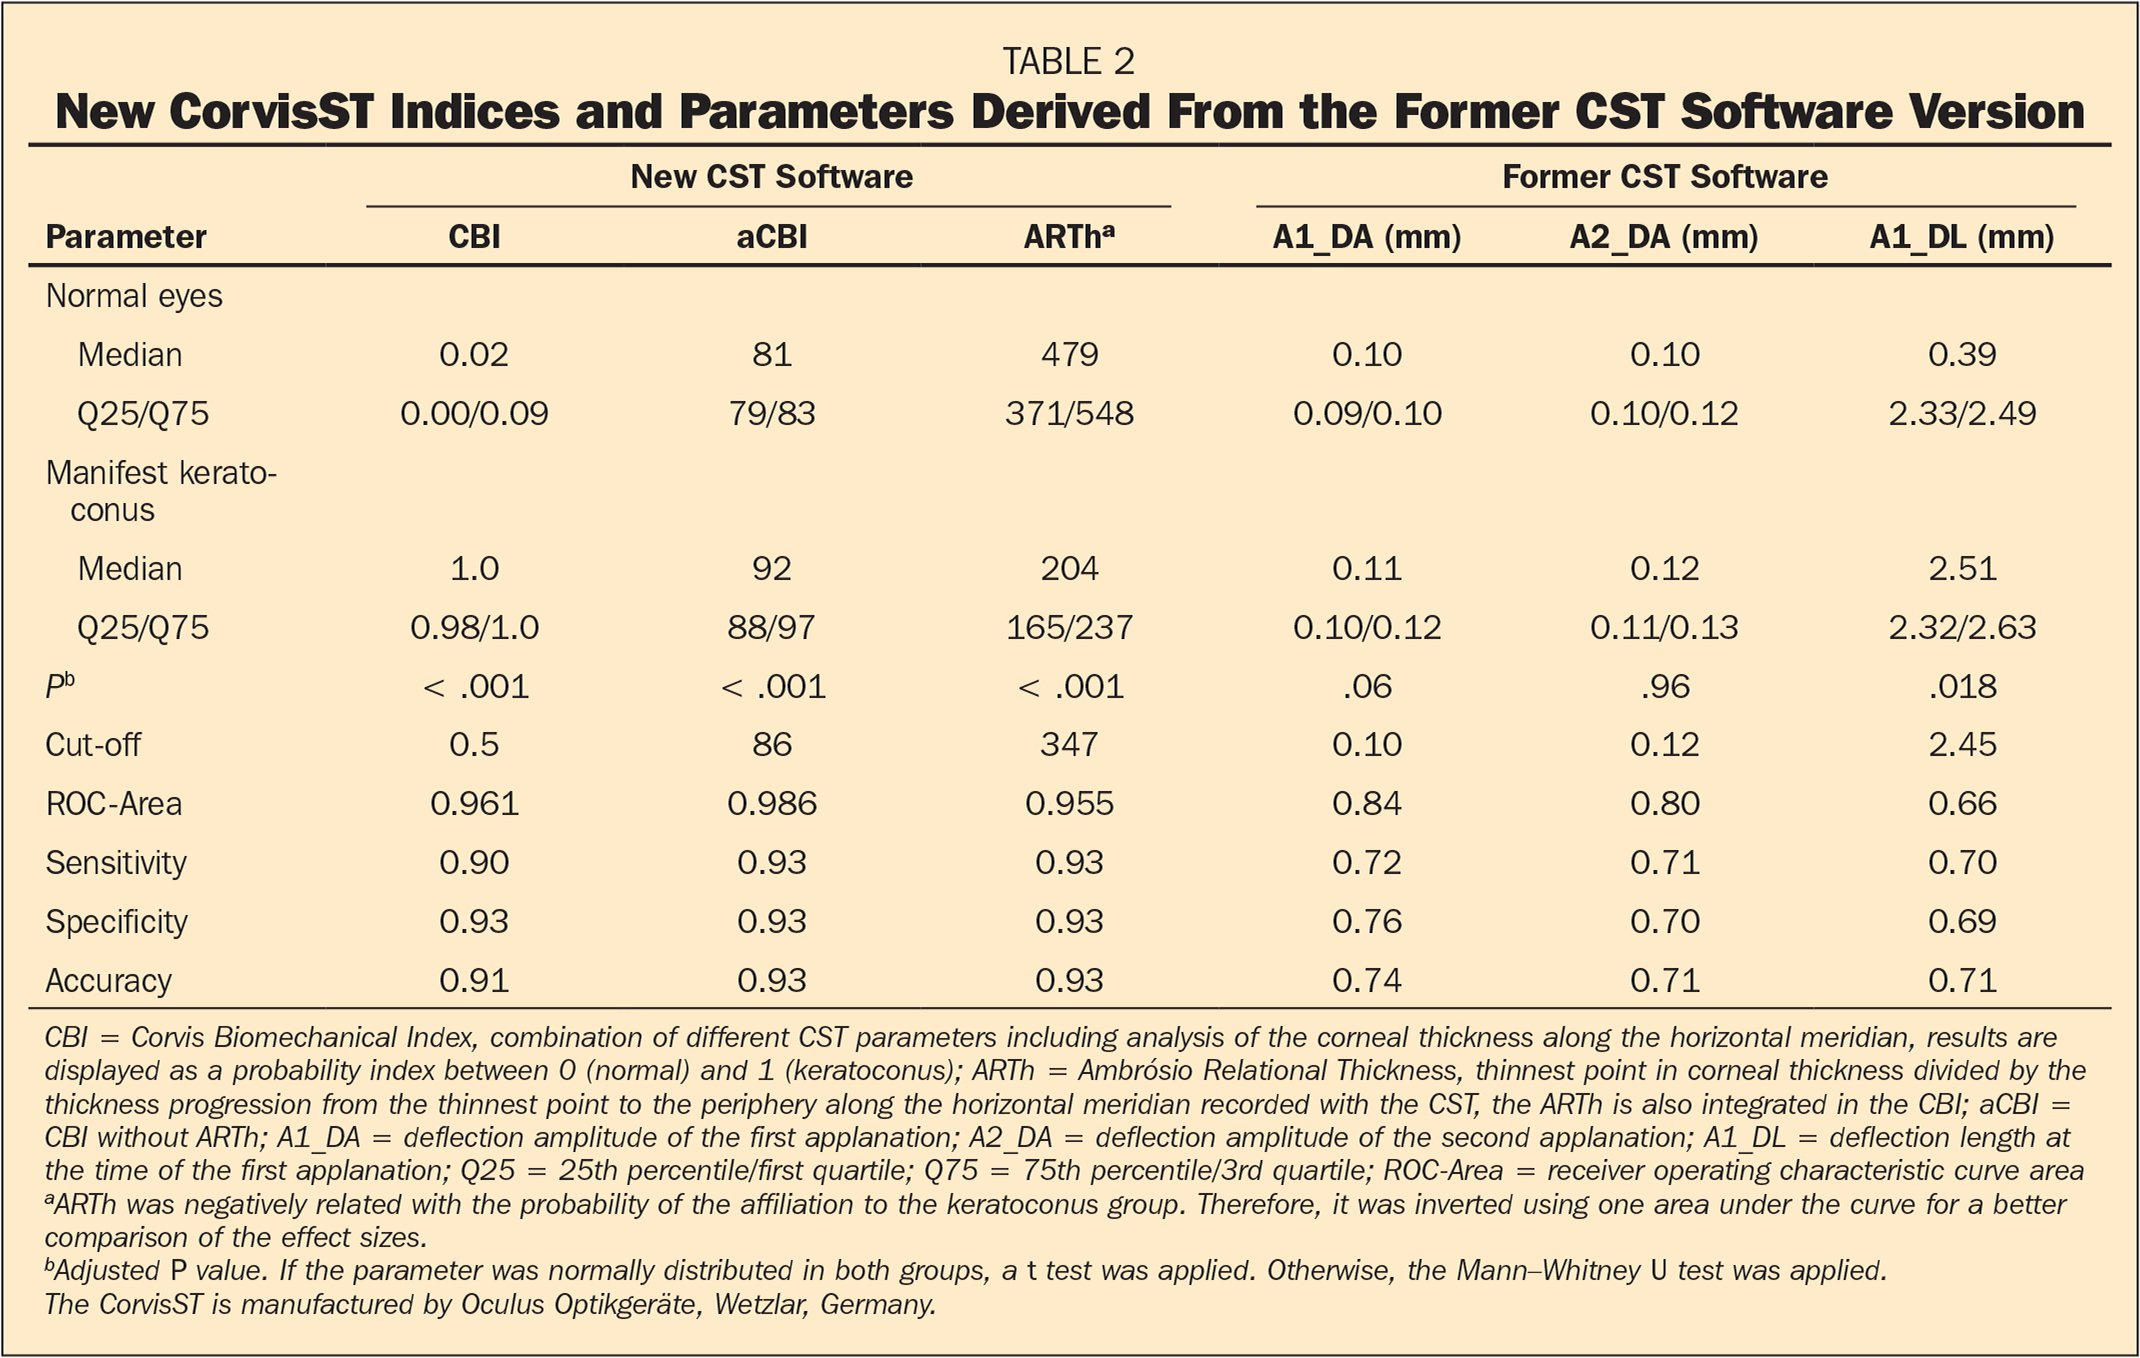 New CorvisST Indices and Parameters Derived From the Former CST Software Version